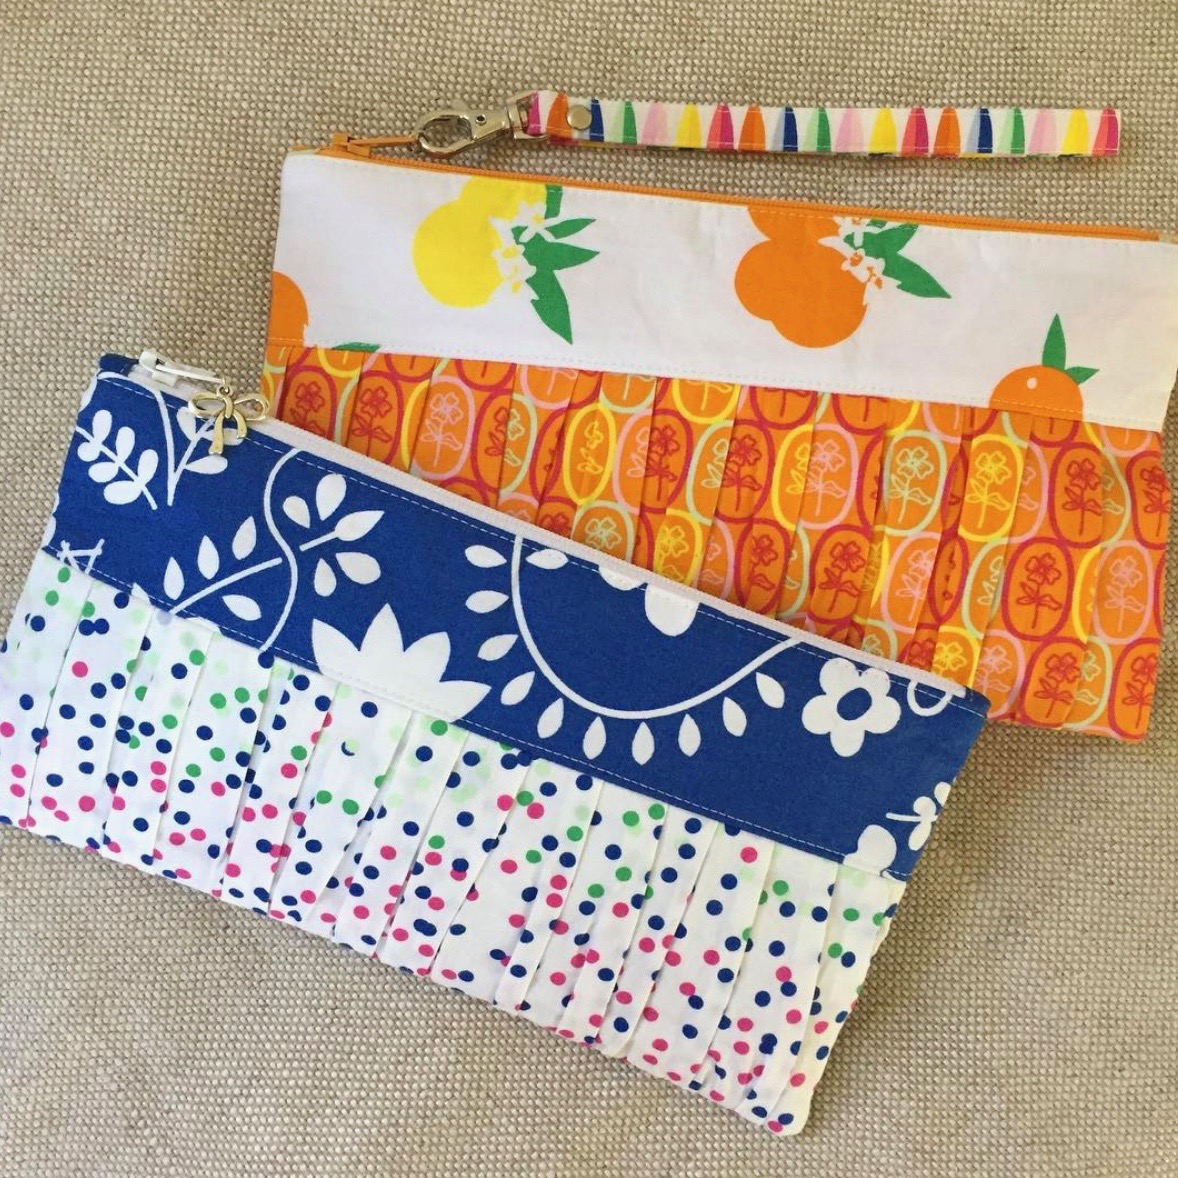 Fiesta Fun fabric collection designed by Dana Willard for Art Gallery Fabrics | Ruffled Wristlet clutch sewing pattern from Carlas Creations available on Craftsy